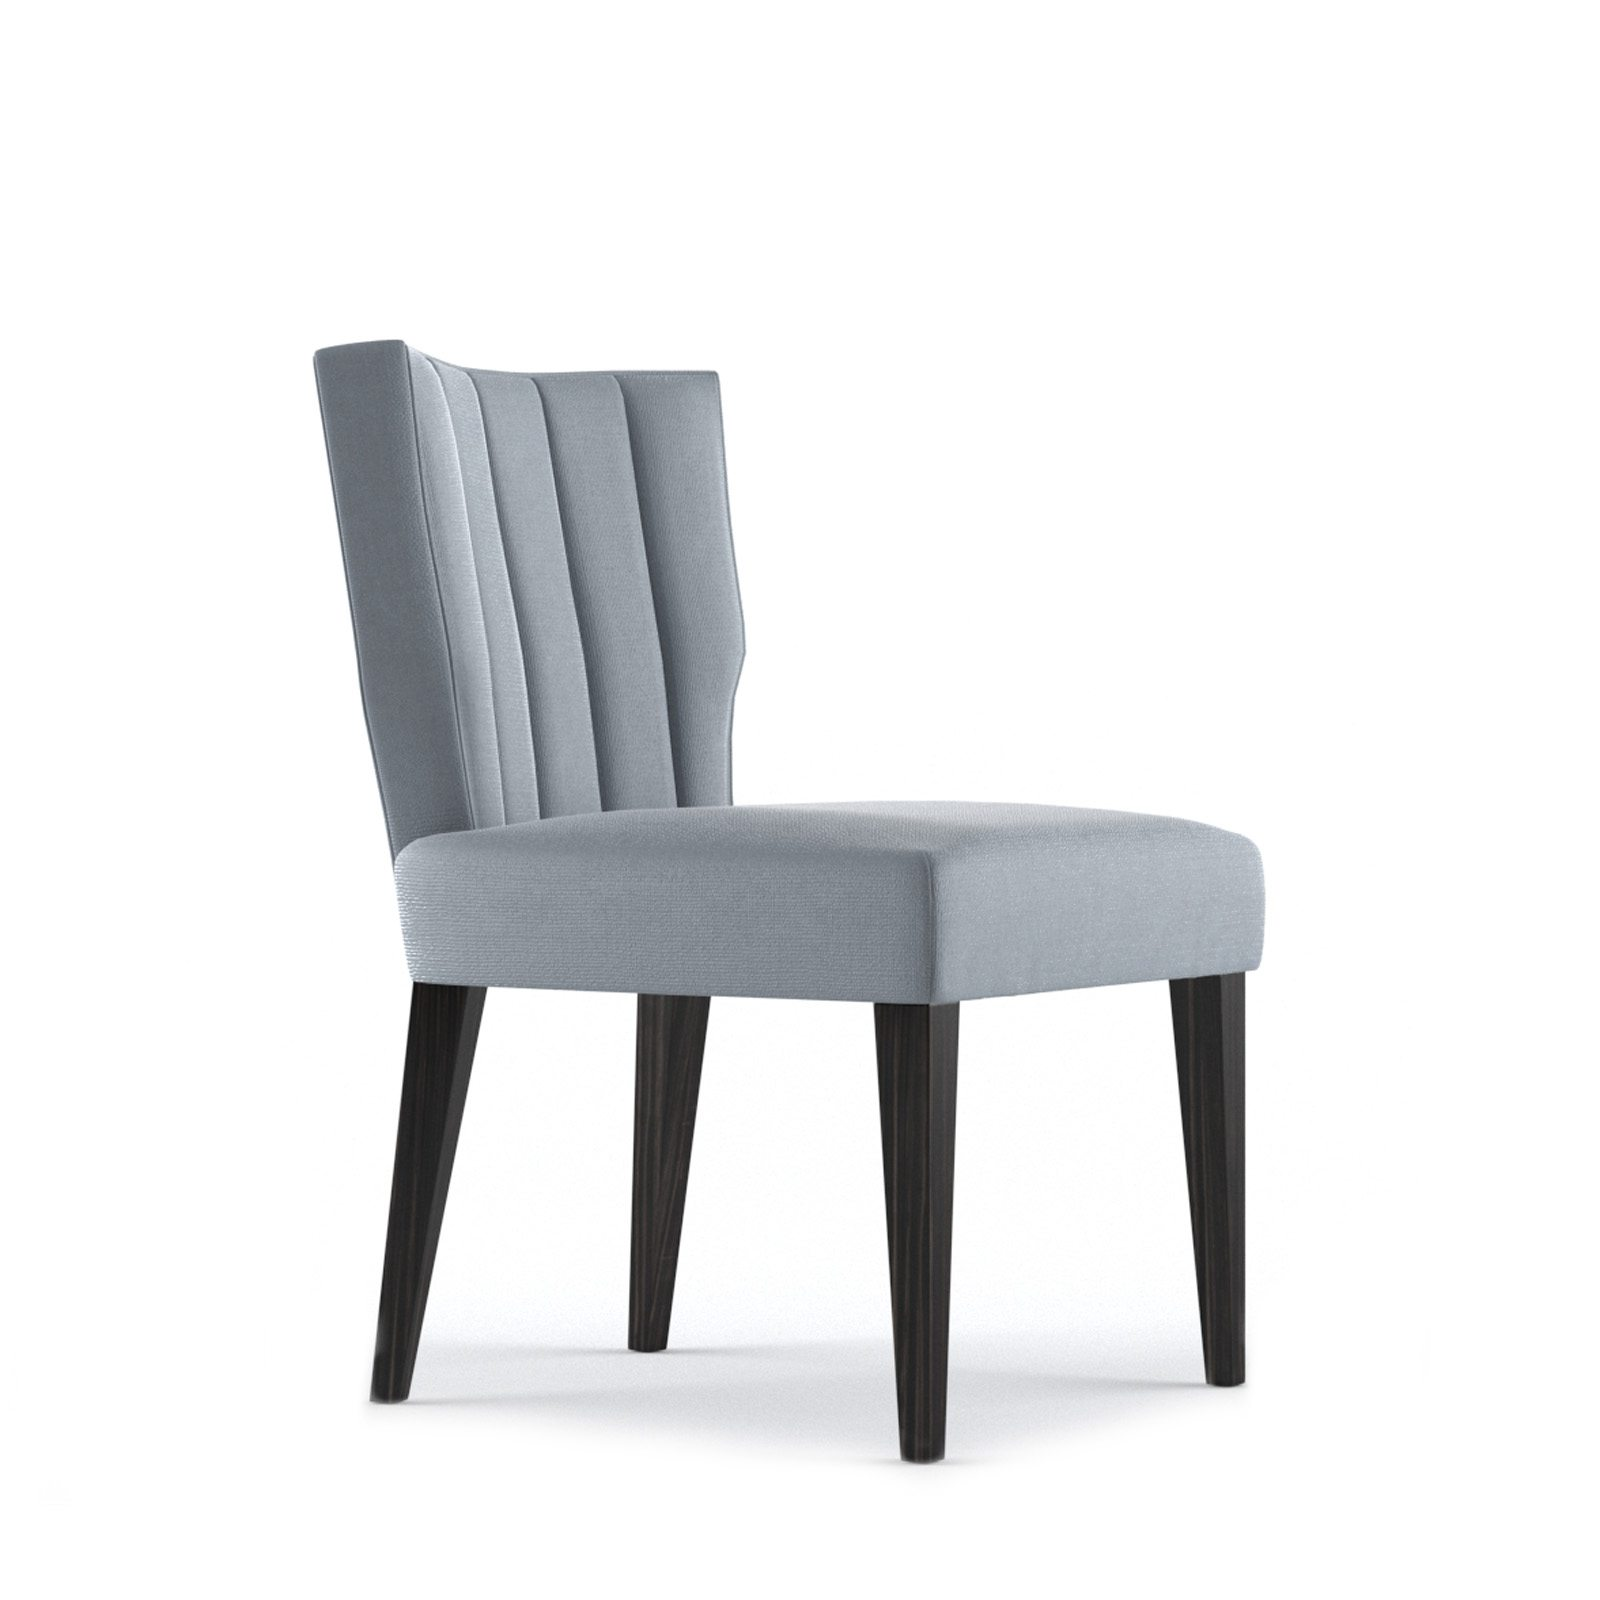 Heath-Dining-Chair-by-Bonham-&-Bonham-10